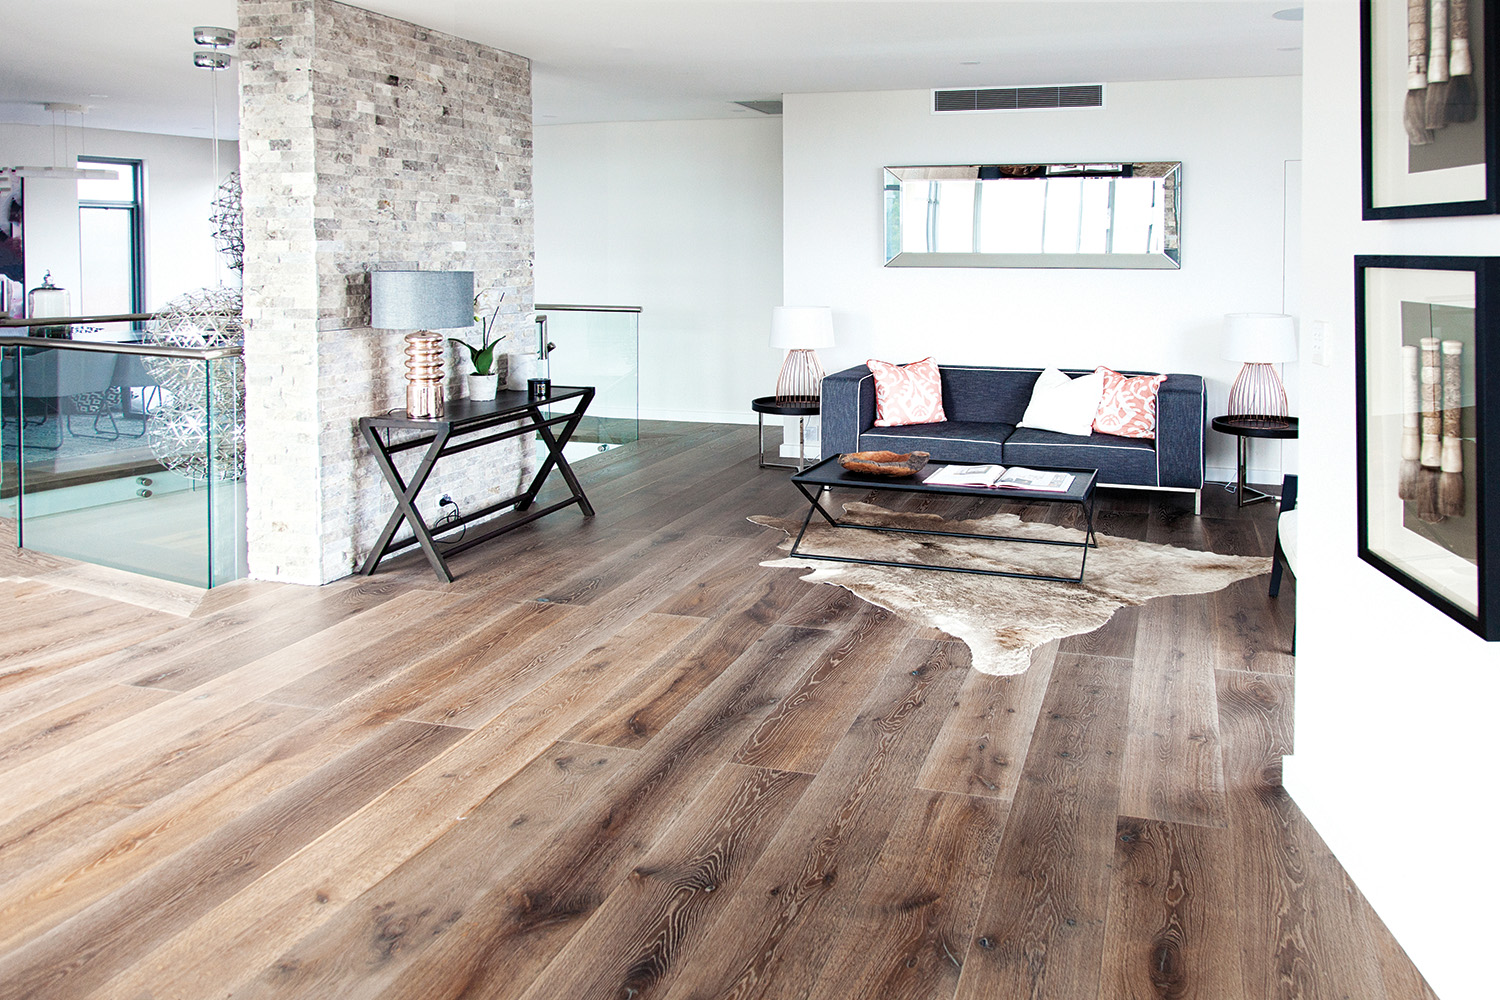 TAKE THE FLOOR ADD WOWFACTOR TO YOUR HOME WITH THE LATEST TRENDS - What is the latest trend in flooring